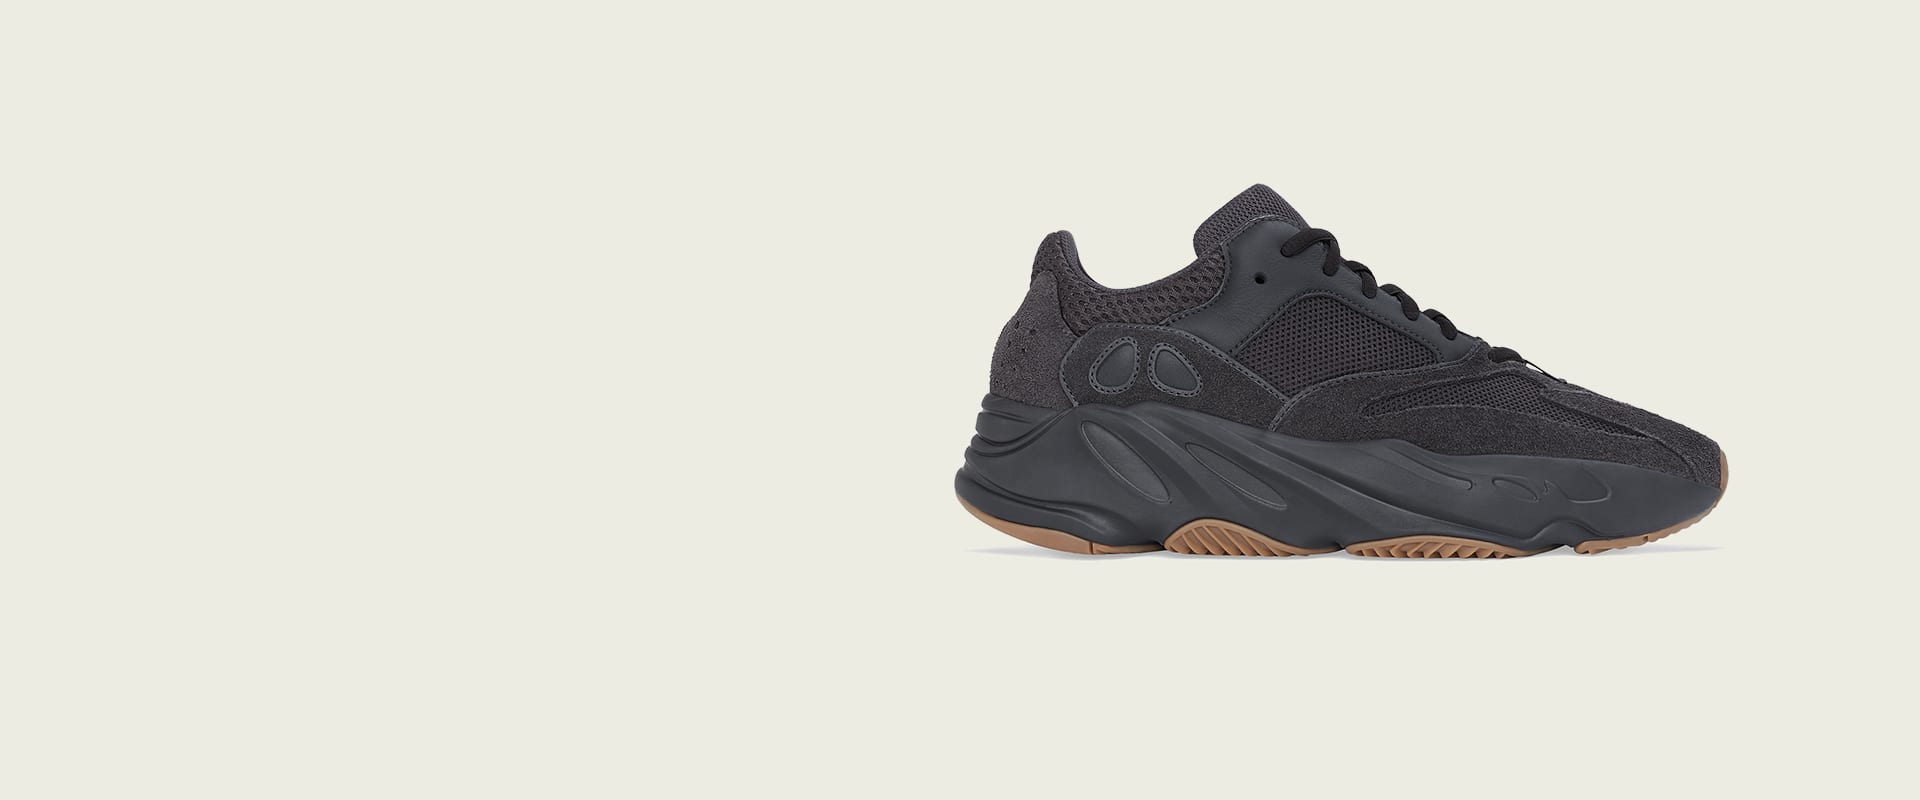 differently 5b476 a68e0 YEEZY BOOST 700 UTILITY BLACK